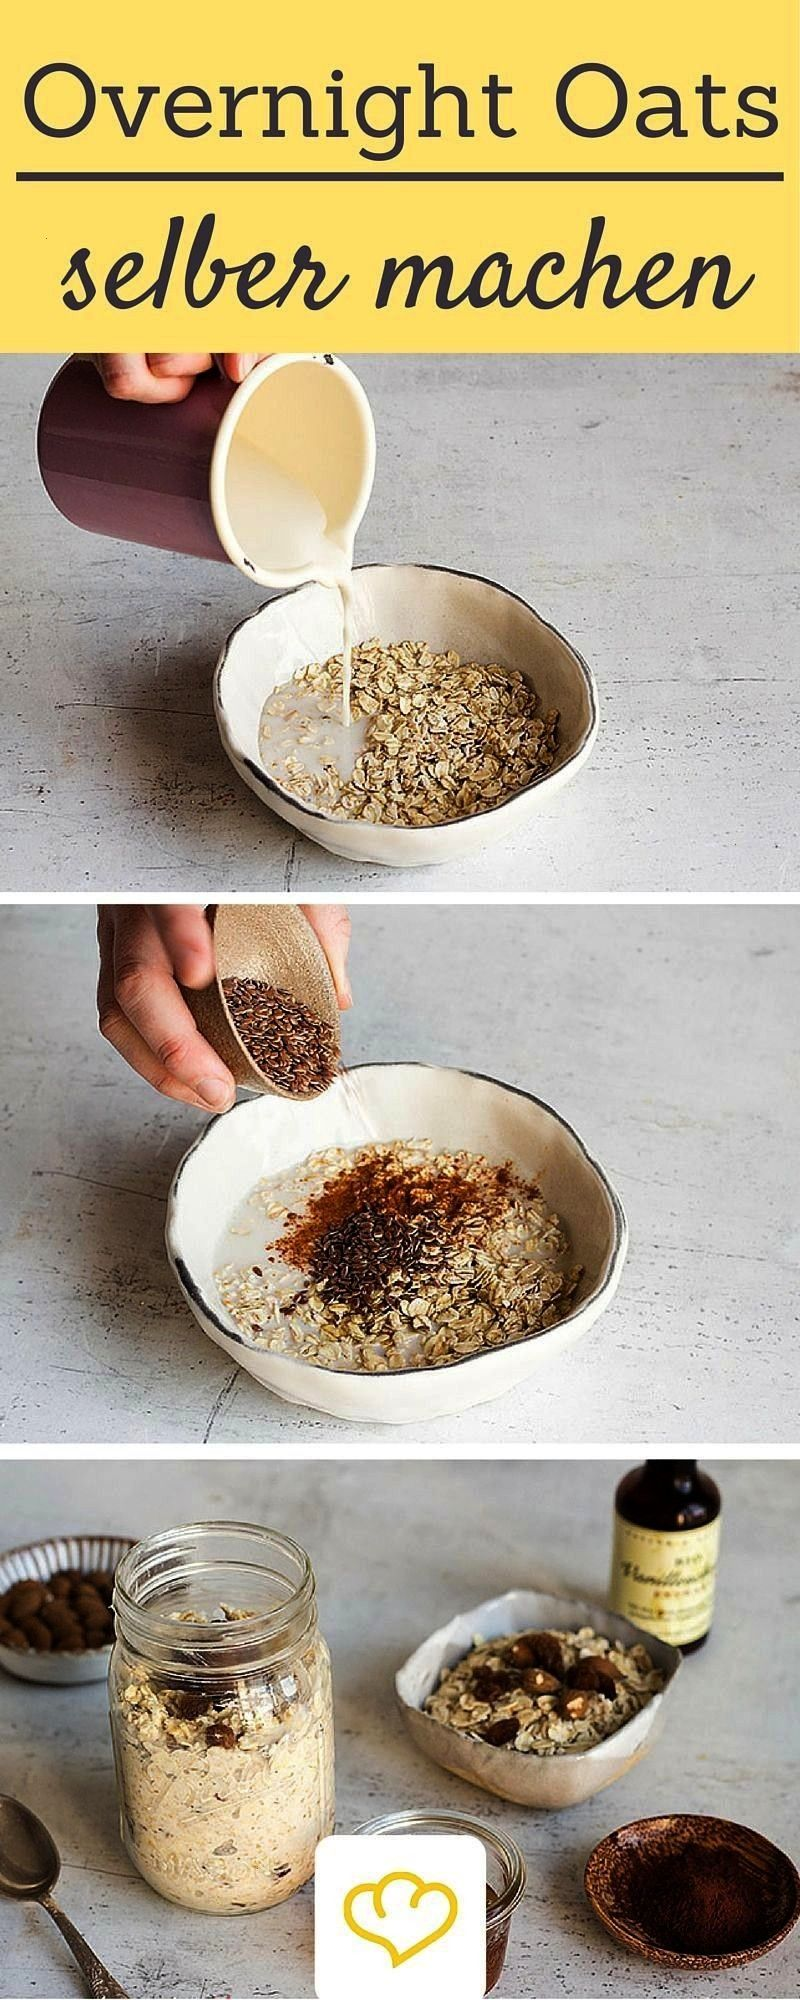 Prepare today enjoy tomorrow  Overnight oats are perfect for meal preparation because they can be easily prepared the evening bef Overnight Oats Prepare today enjoy tomor...